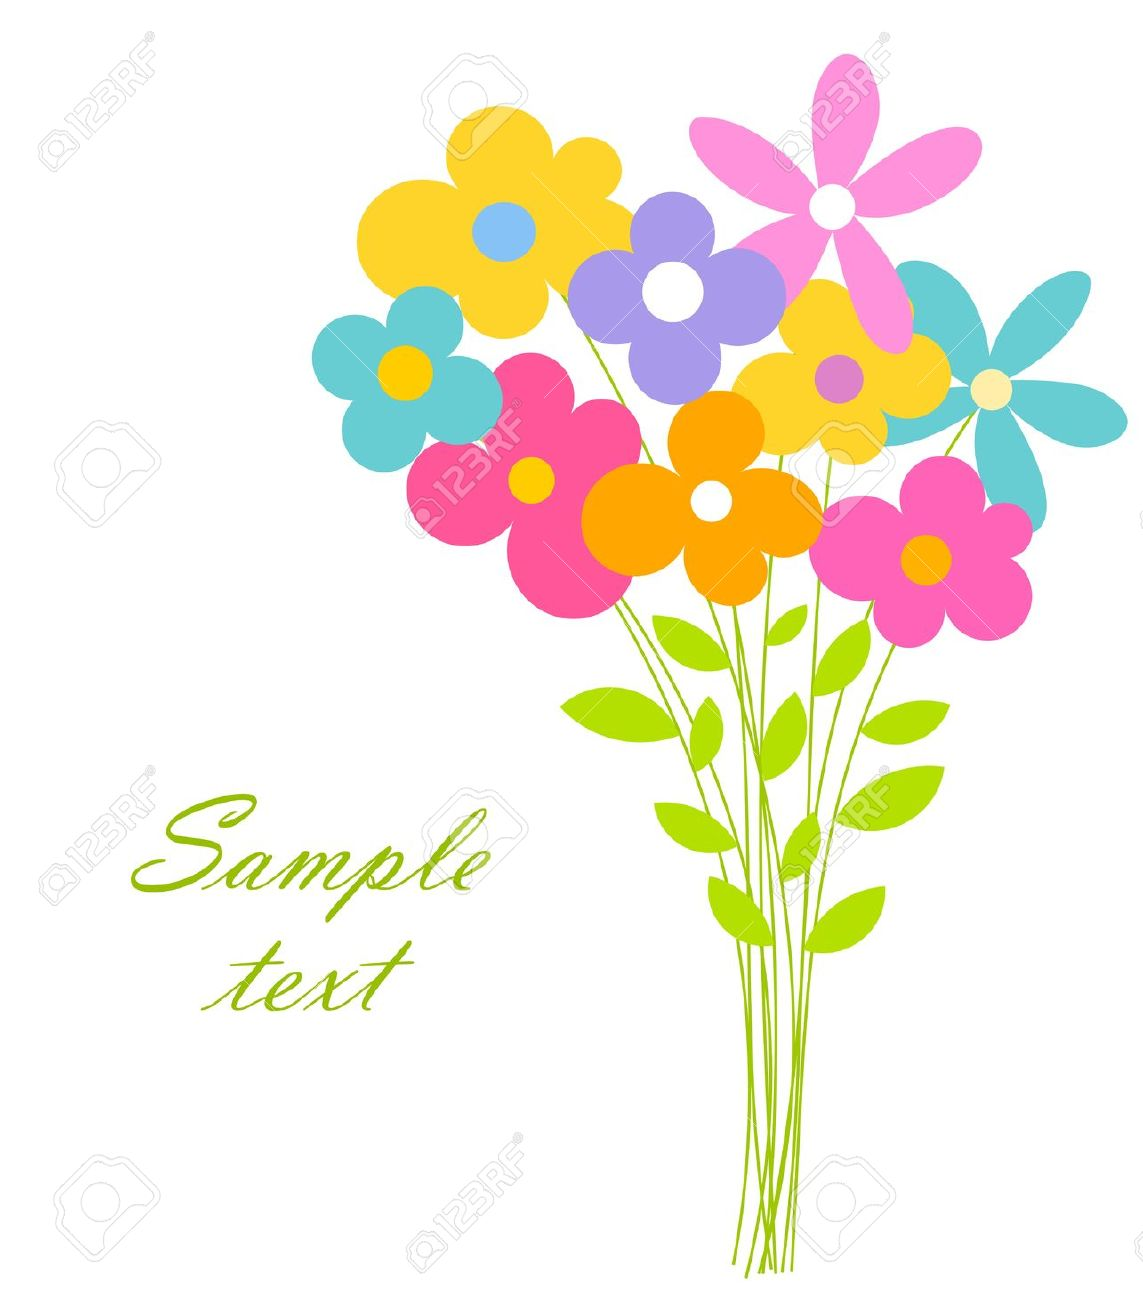 Cute Bouquet Of Flowers. Vector Illustration Royalty Free Cliparts ... banner transparent download